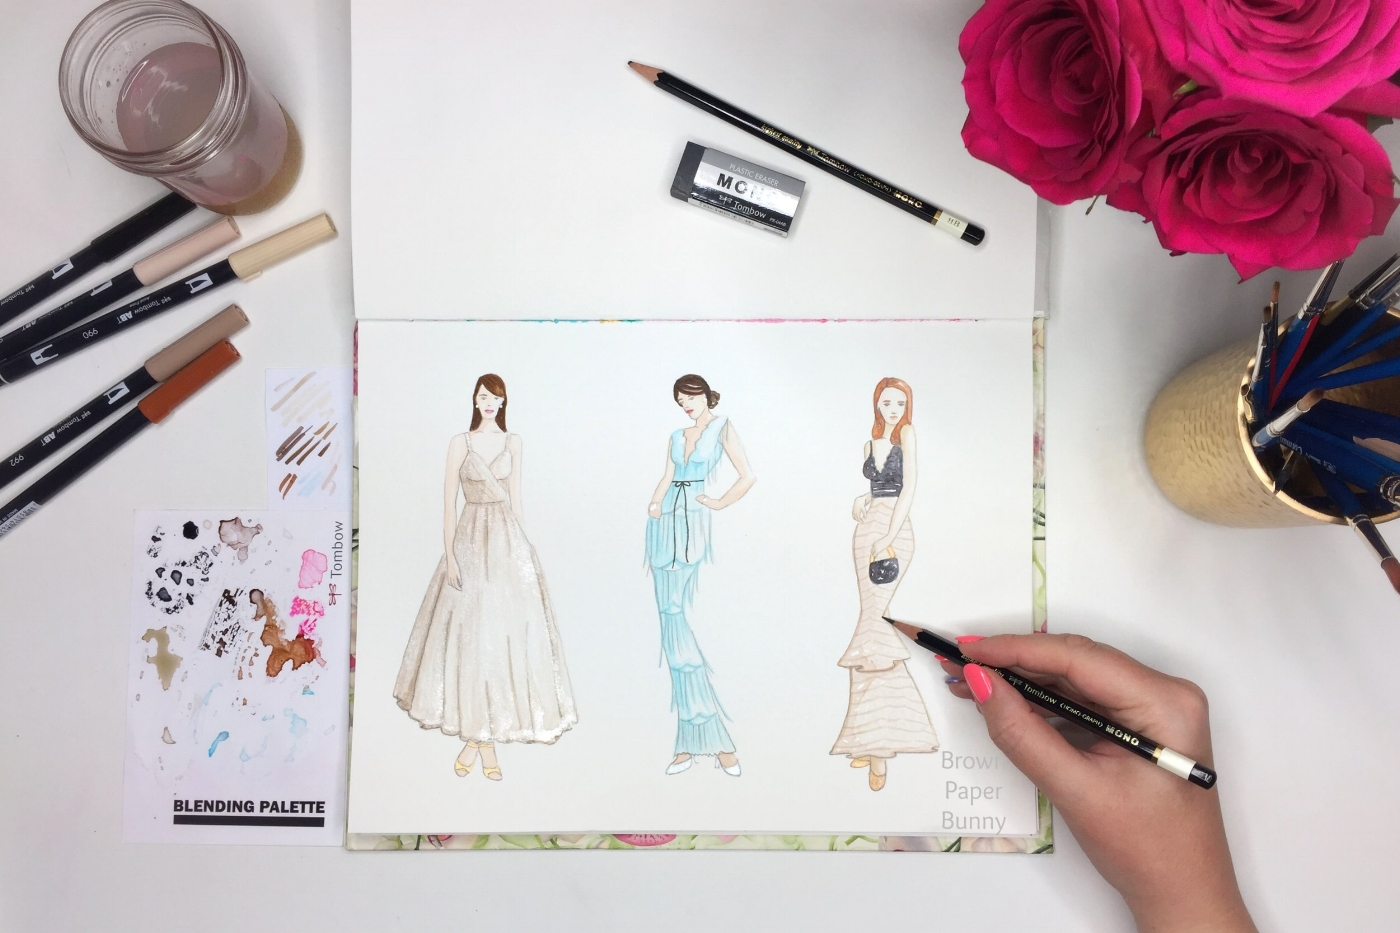 Fashion Illustration Oscars 2017 Red Carpet by BrownPaperBunny